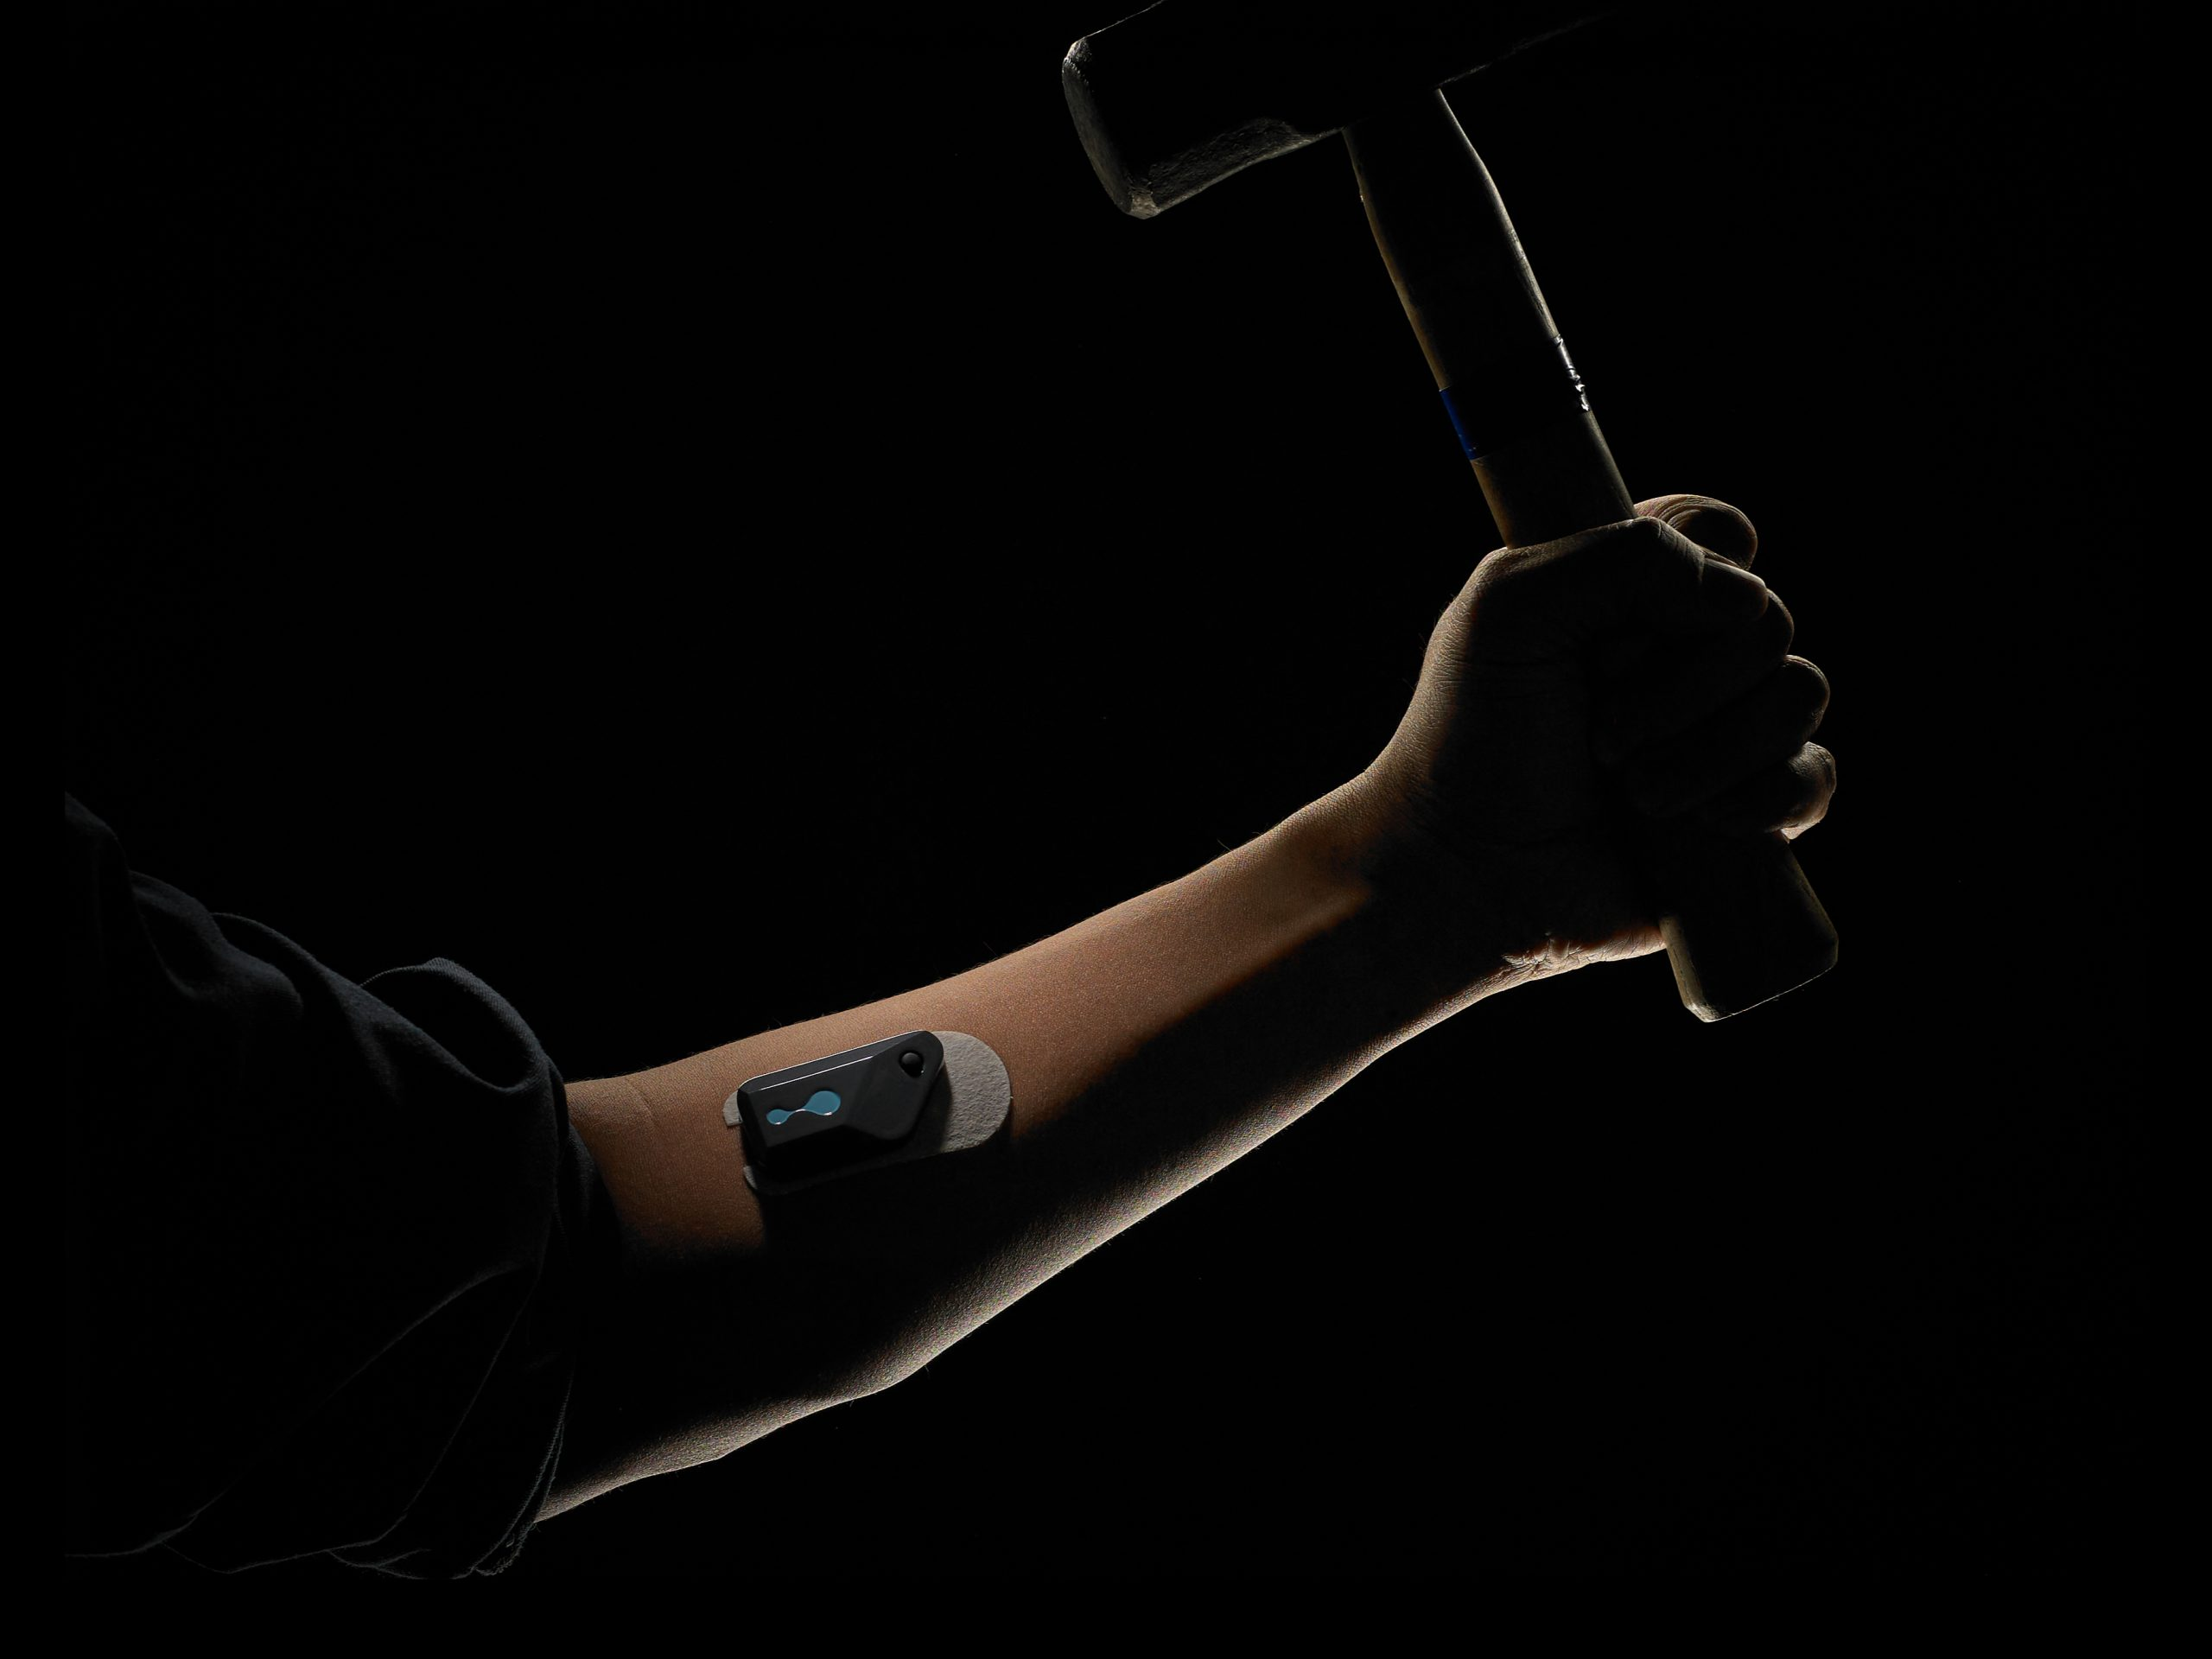 Image of Connected Hydration device on forearm of subject weilding a hammer